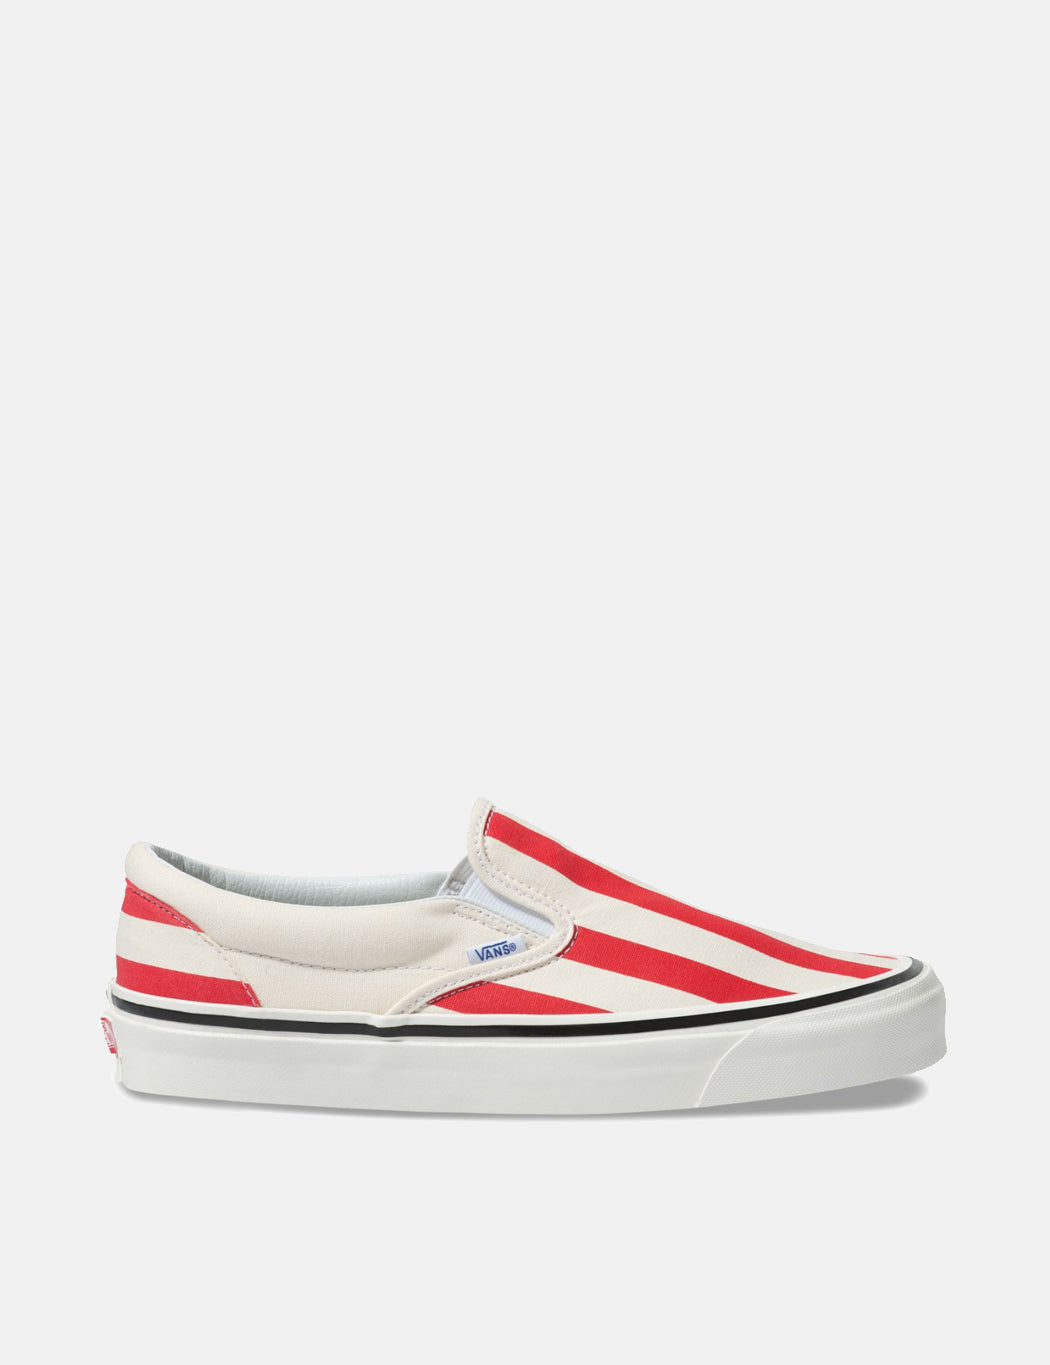 426dedd578 Vans Classic Slip-On 98 DX (Canvas) - White OG Red Big Stripes ...